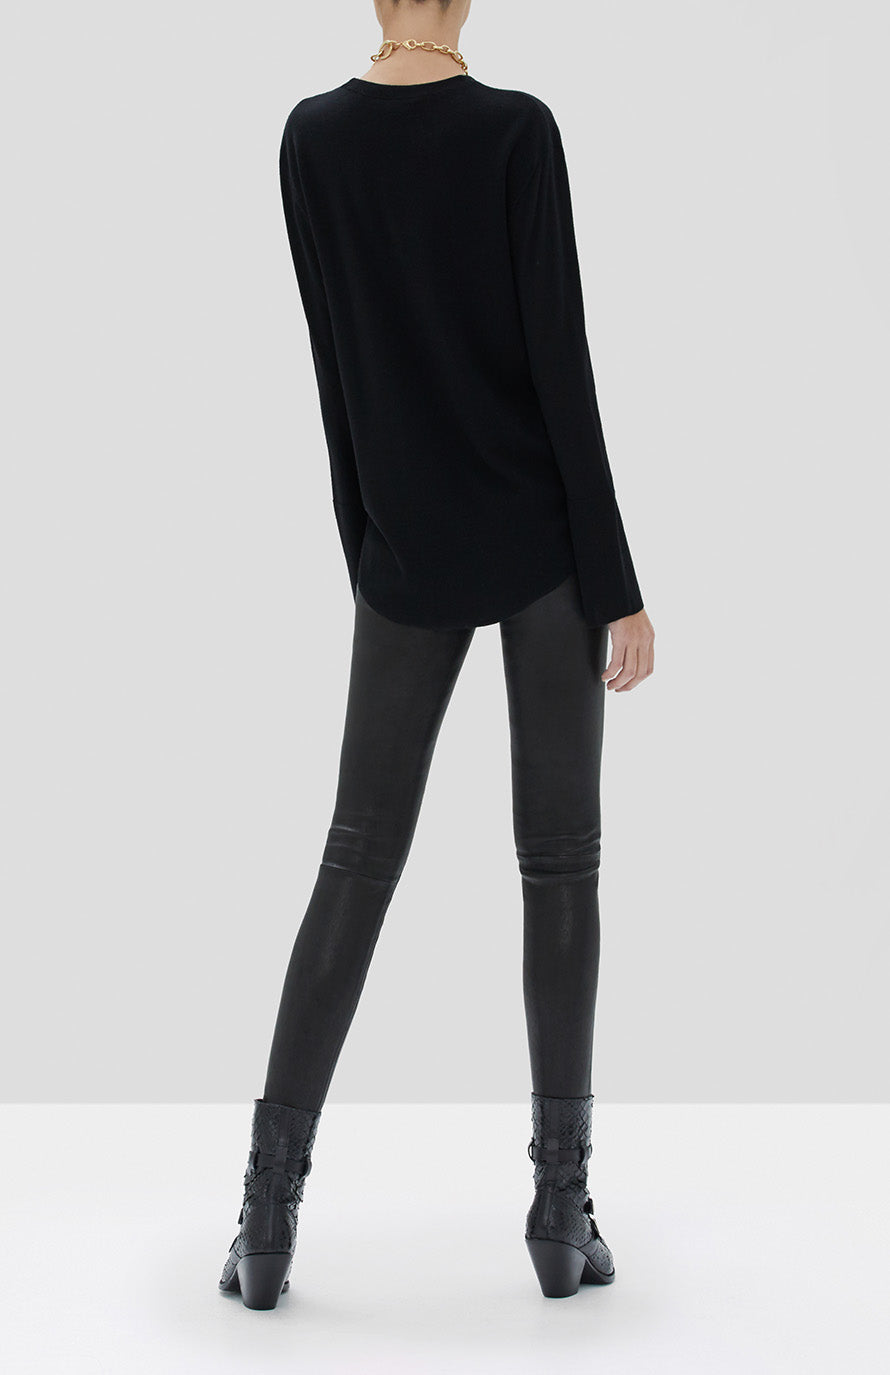 Alexis Katiana Sweater in Black and Boyd Leather Pant in Blue Black from the Fall Winter 2019 Ready To Wear Collection - Rear View